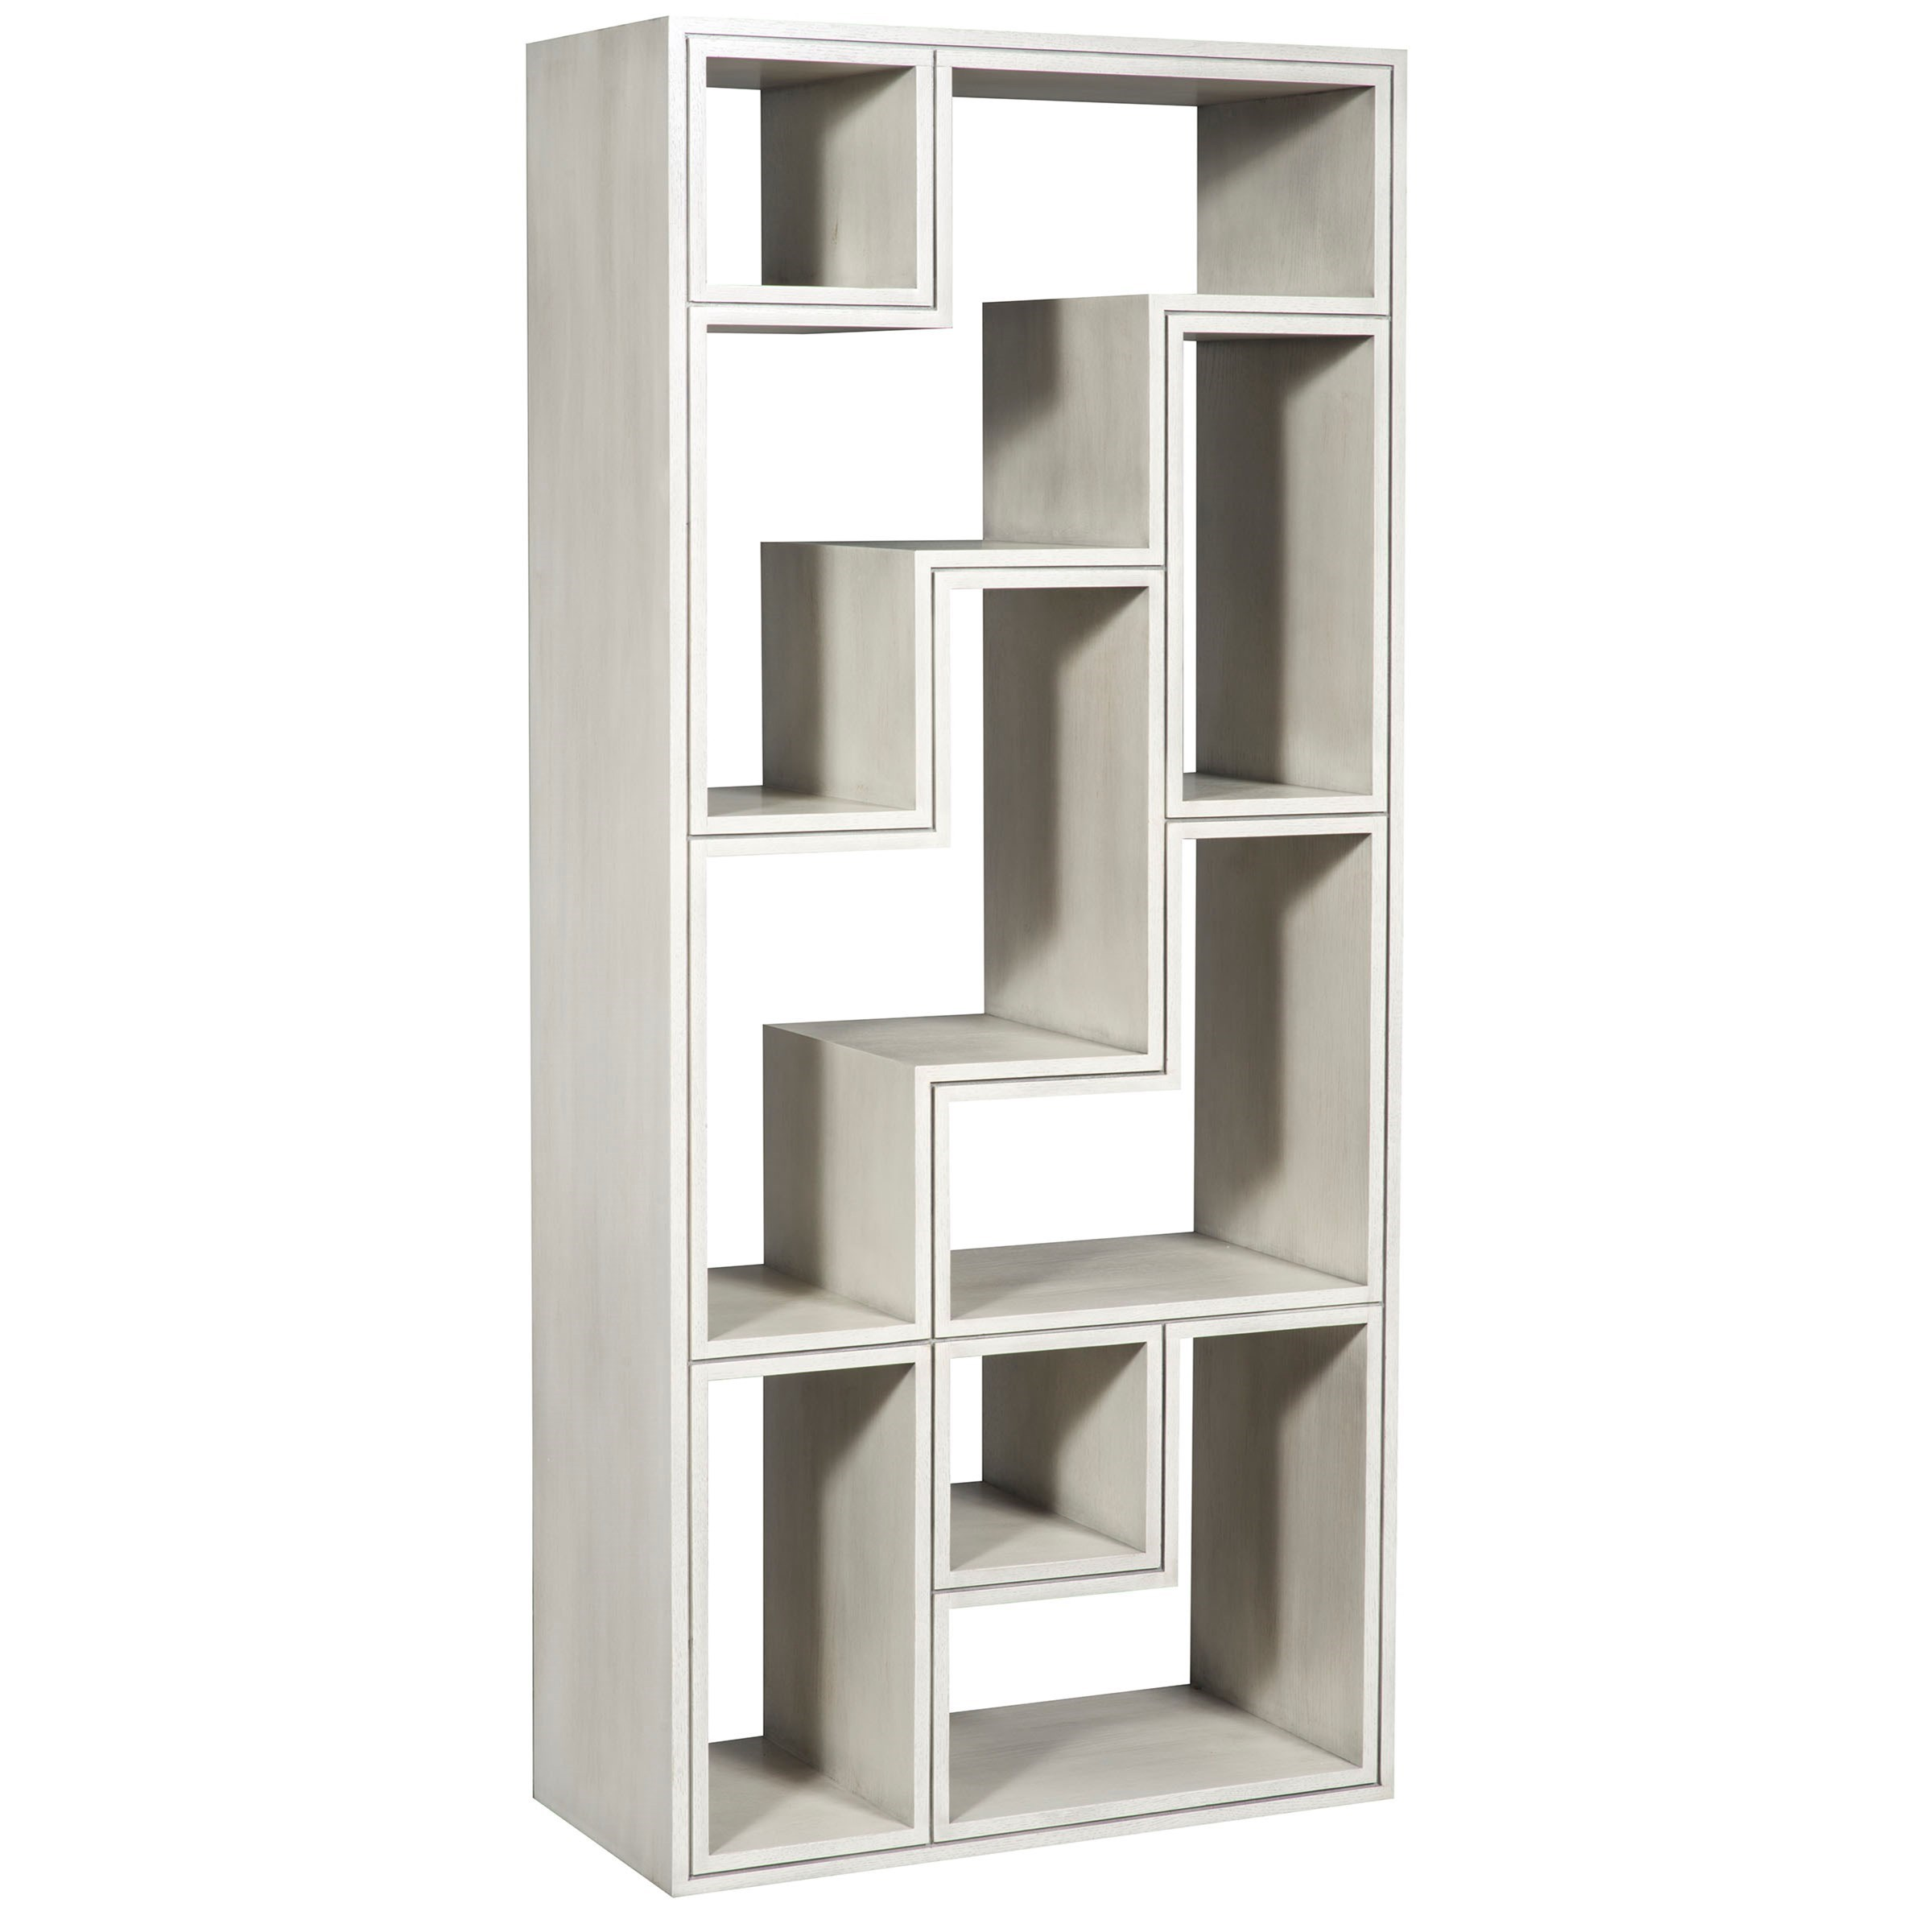 Fenton by Thom Filicia Home Bookshelf / Console by Vanguard Furniture at Baer's Furniture